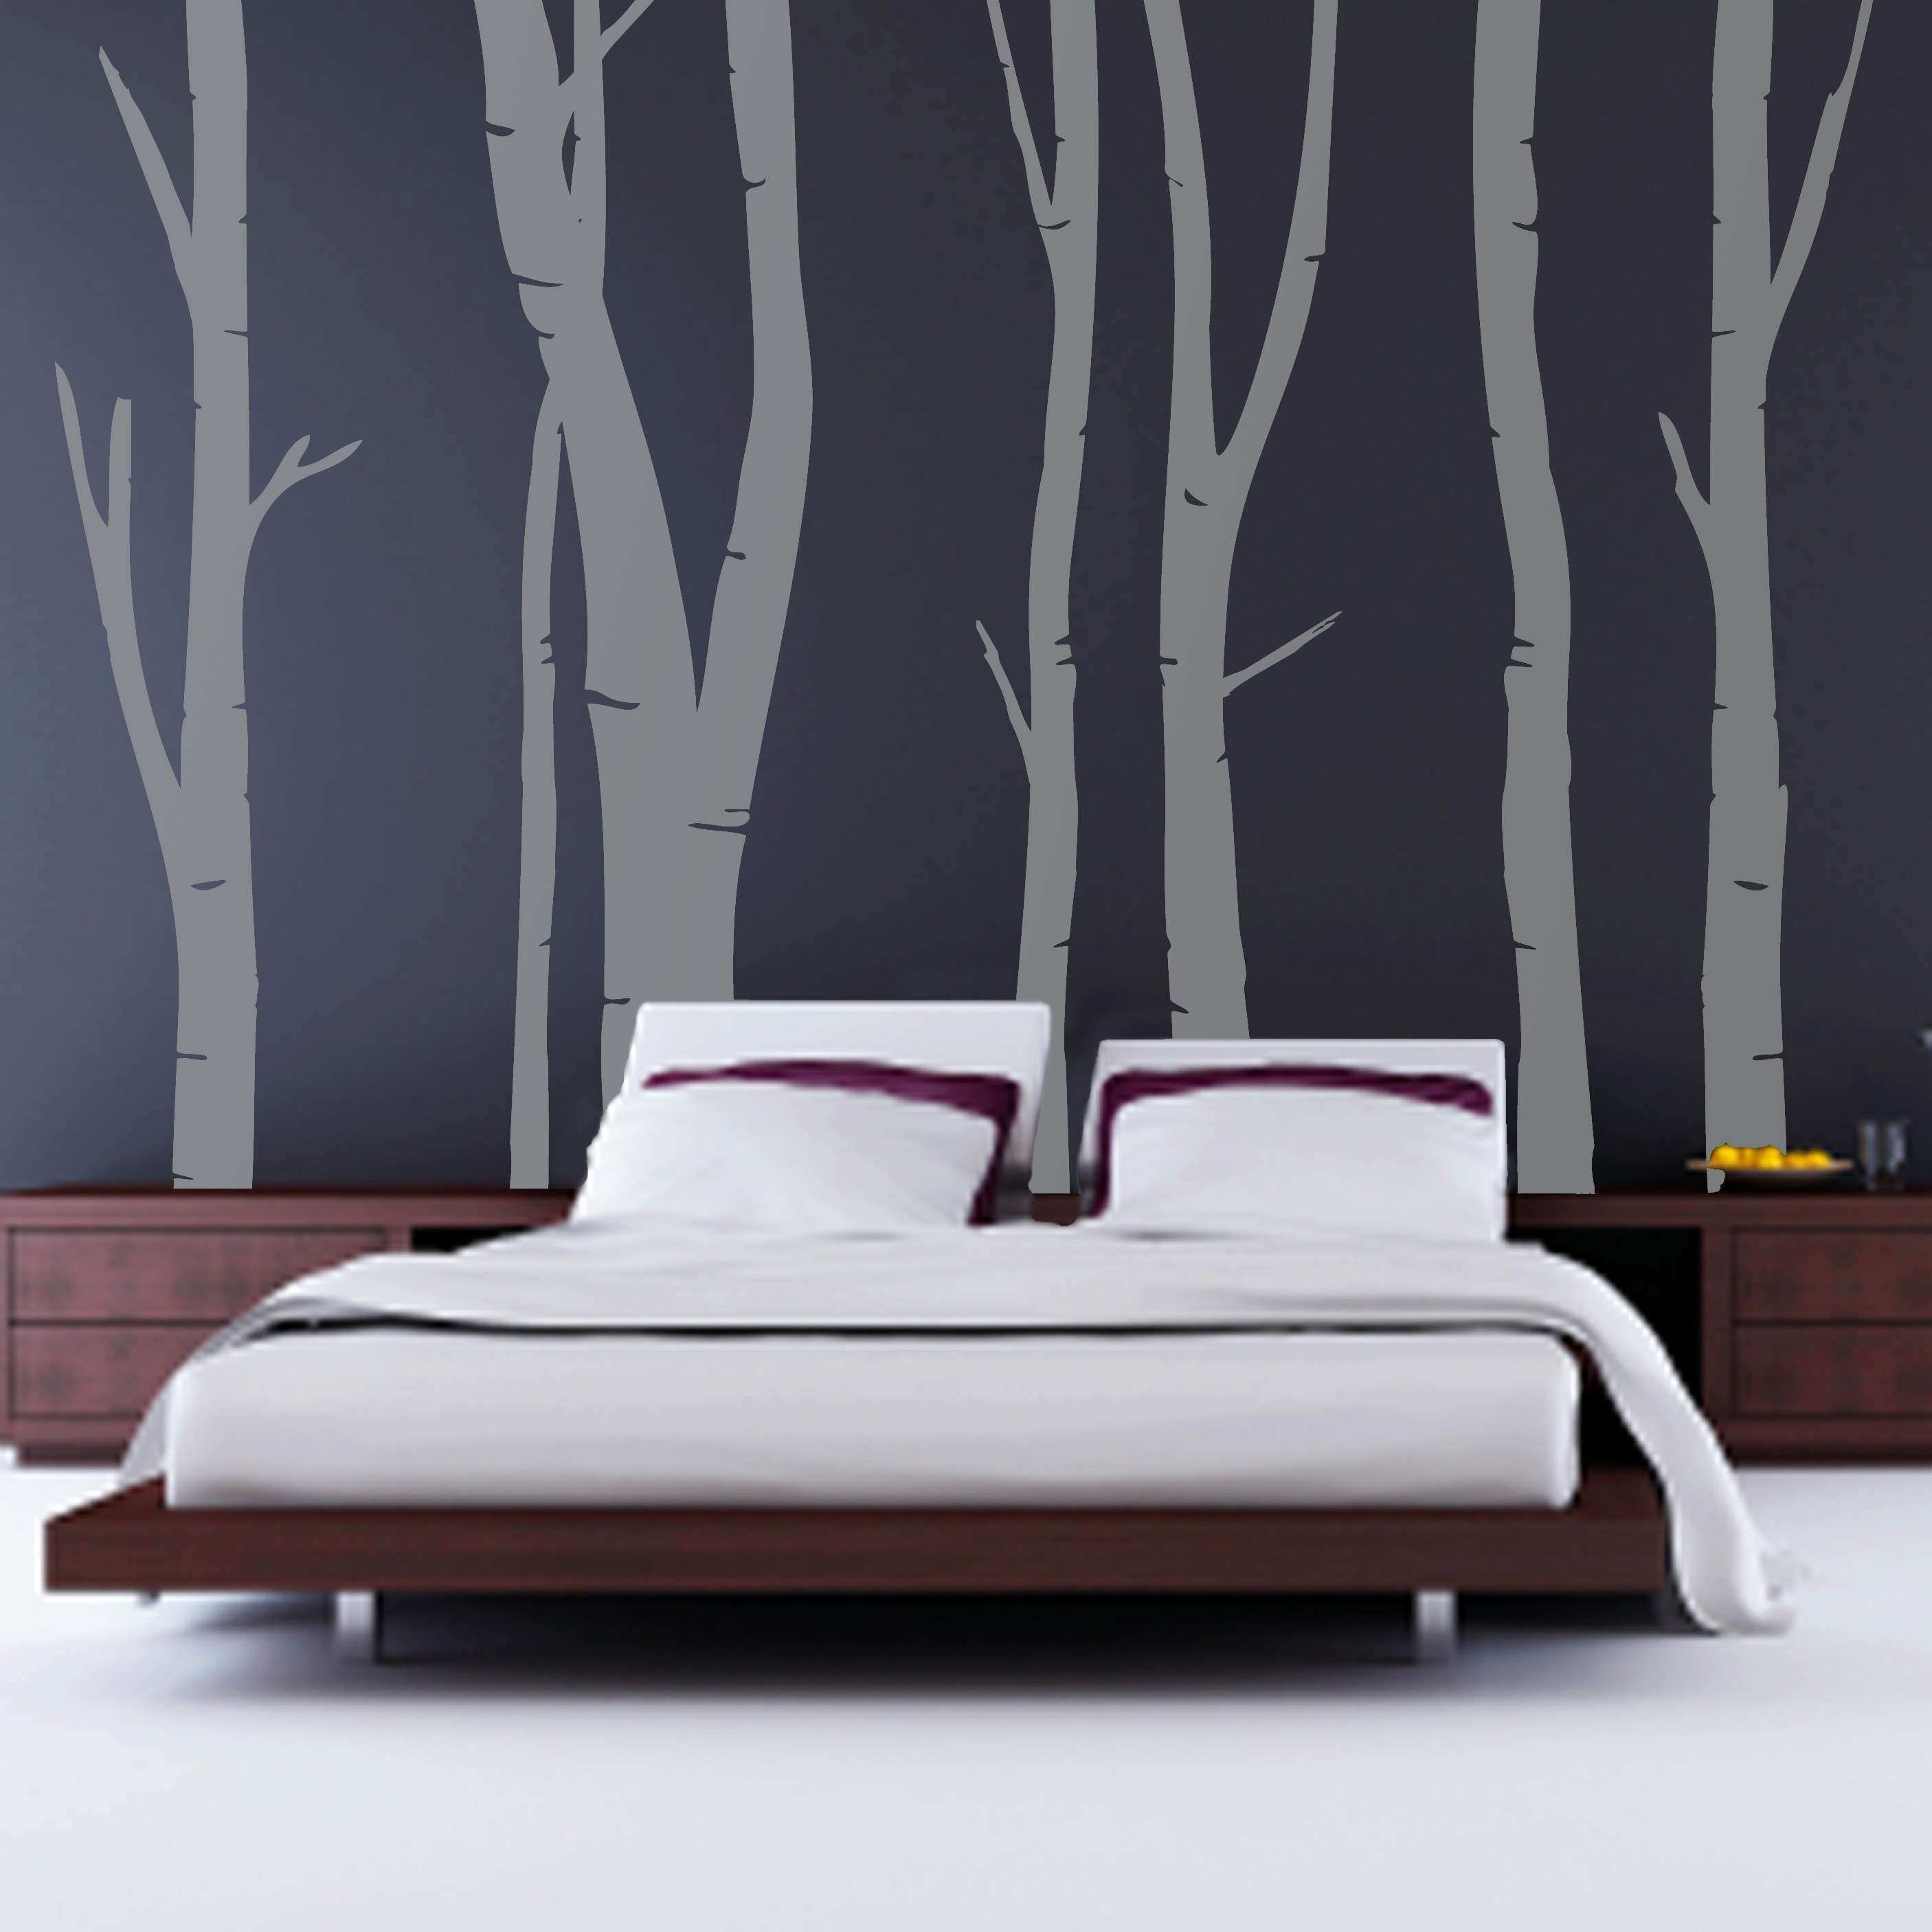 Bedroom Mirror Ideas Best Wall Decals for Bedroom Unique 1